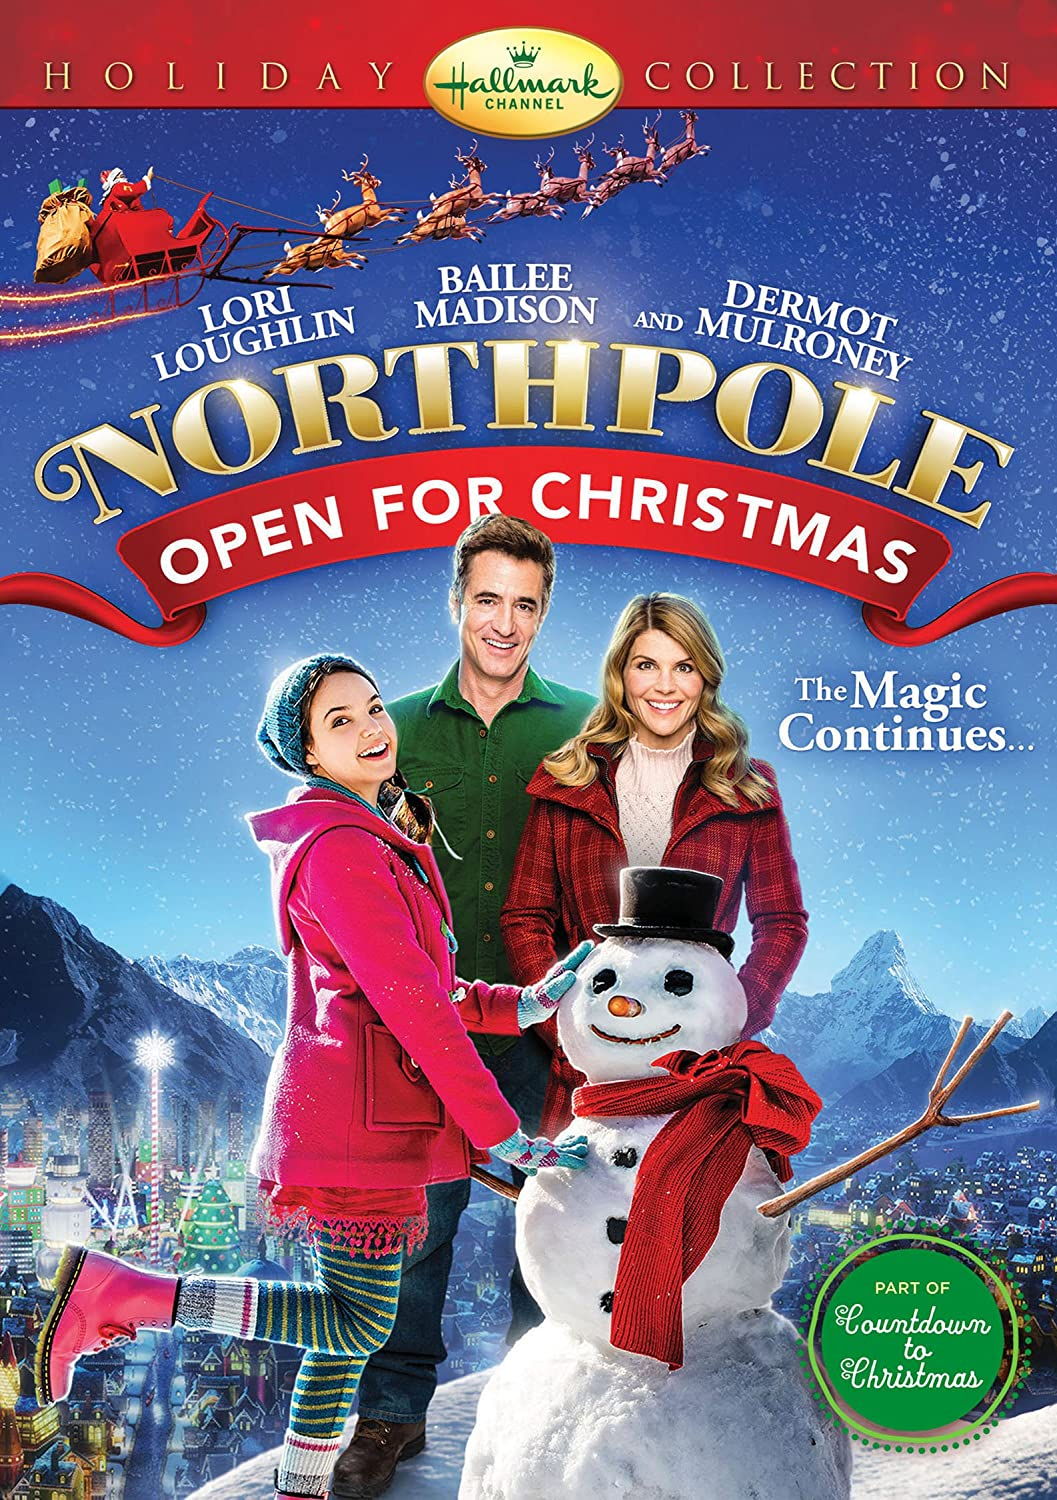 Amazon.com: Northpole:Open for Christmas: Lori Loughlin, Bailee ...